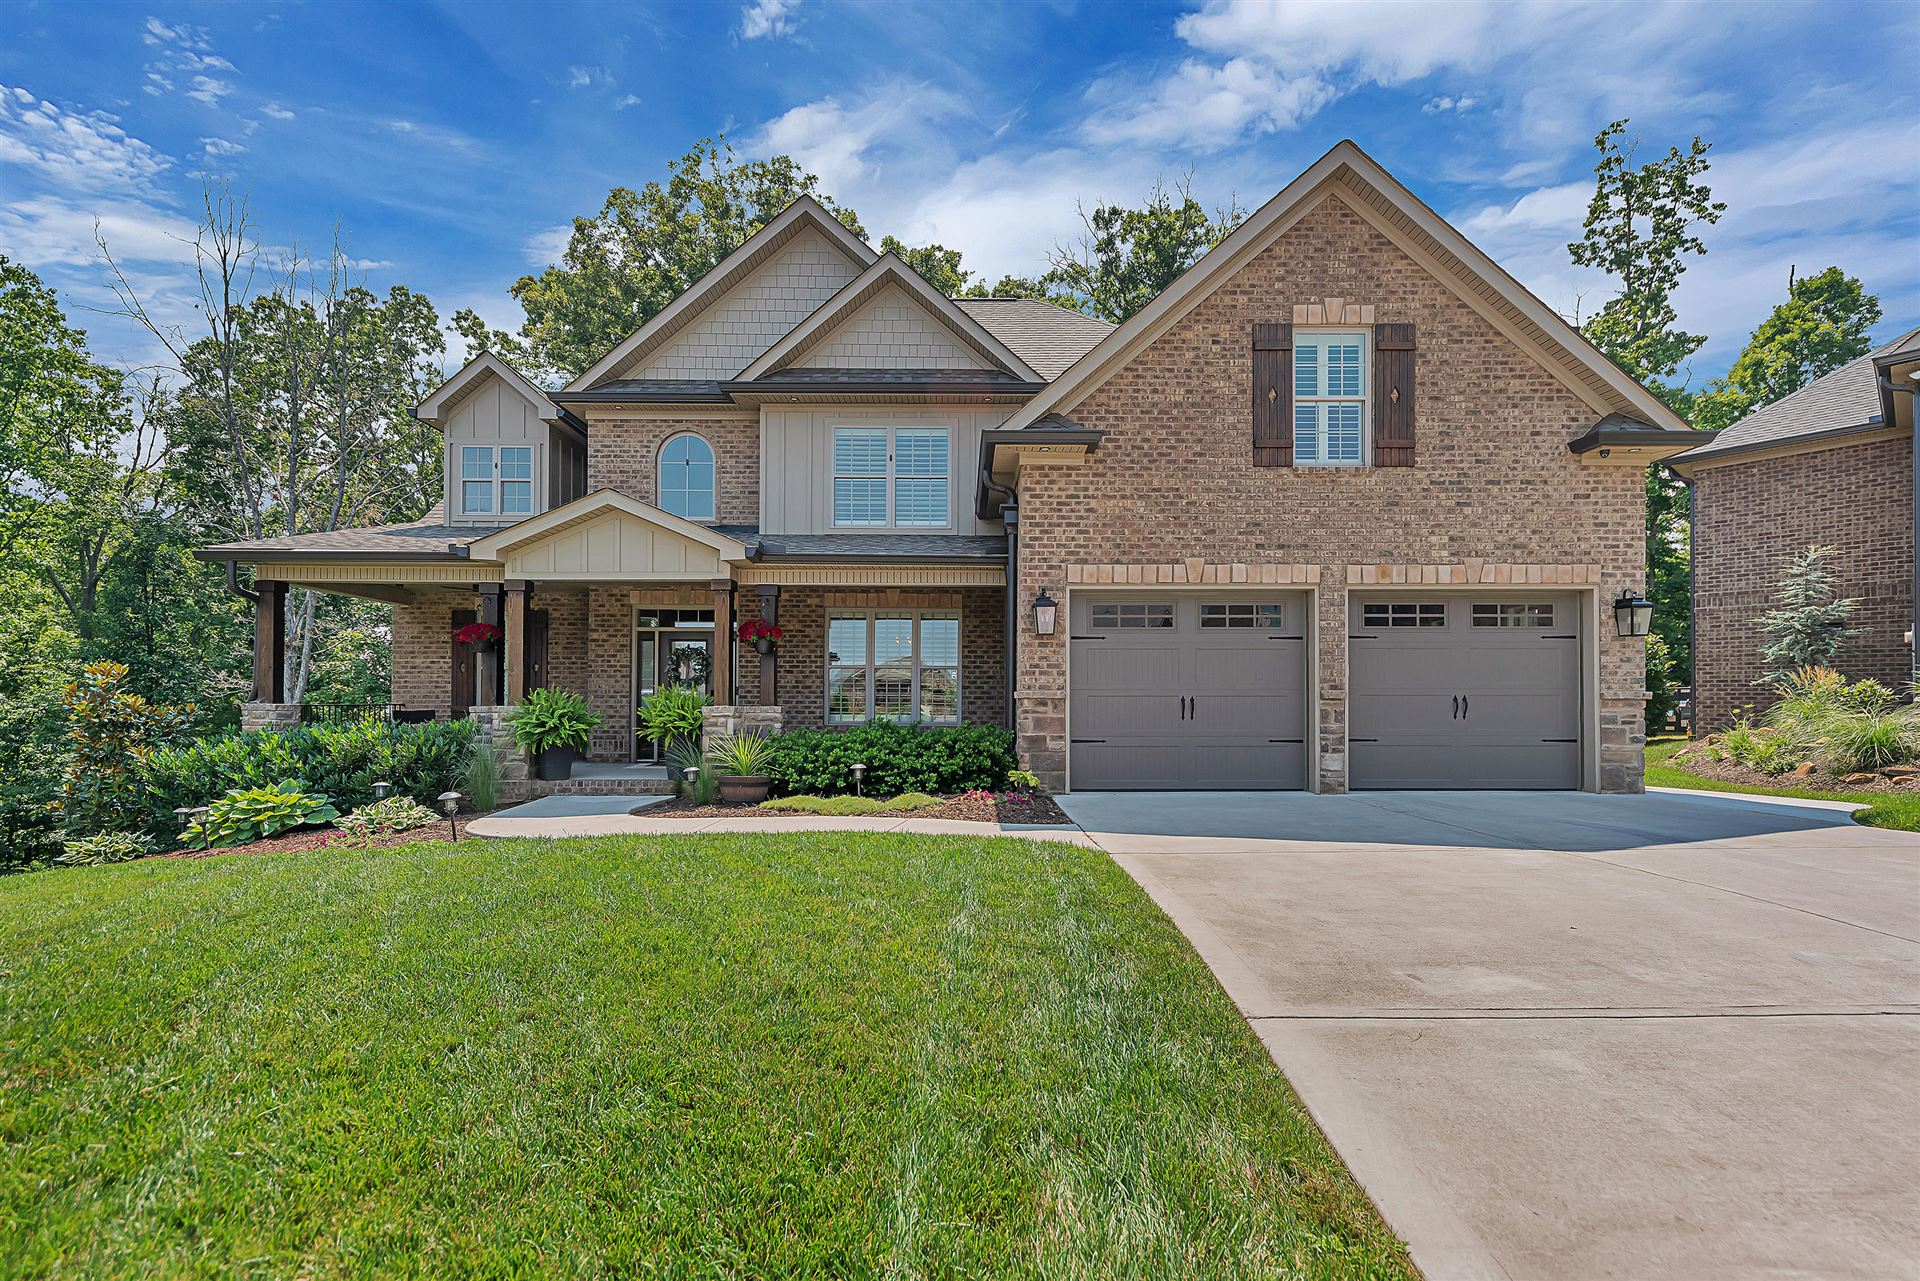 Photo of 10318 Avery Springs Lane, Knoxville, TN 37922 (MLS # 1162186)